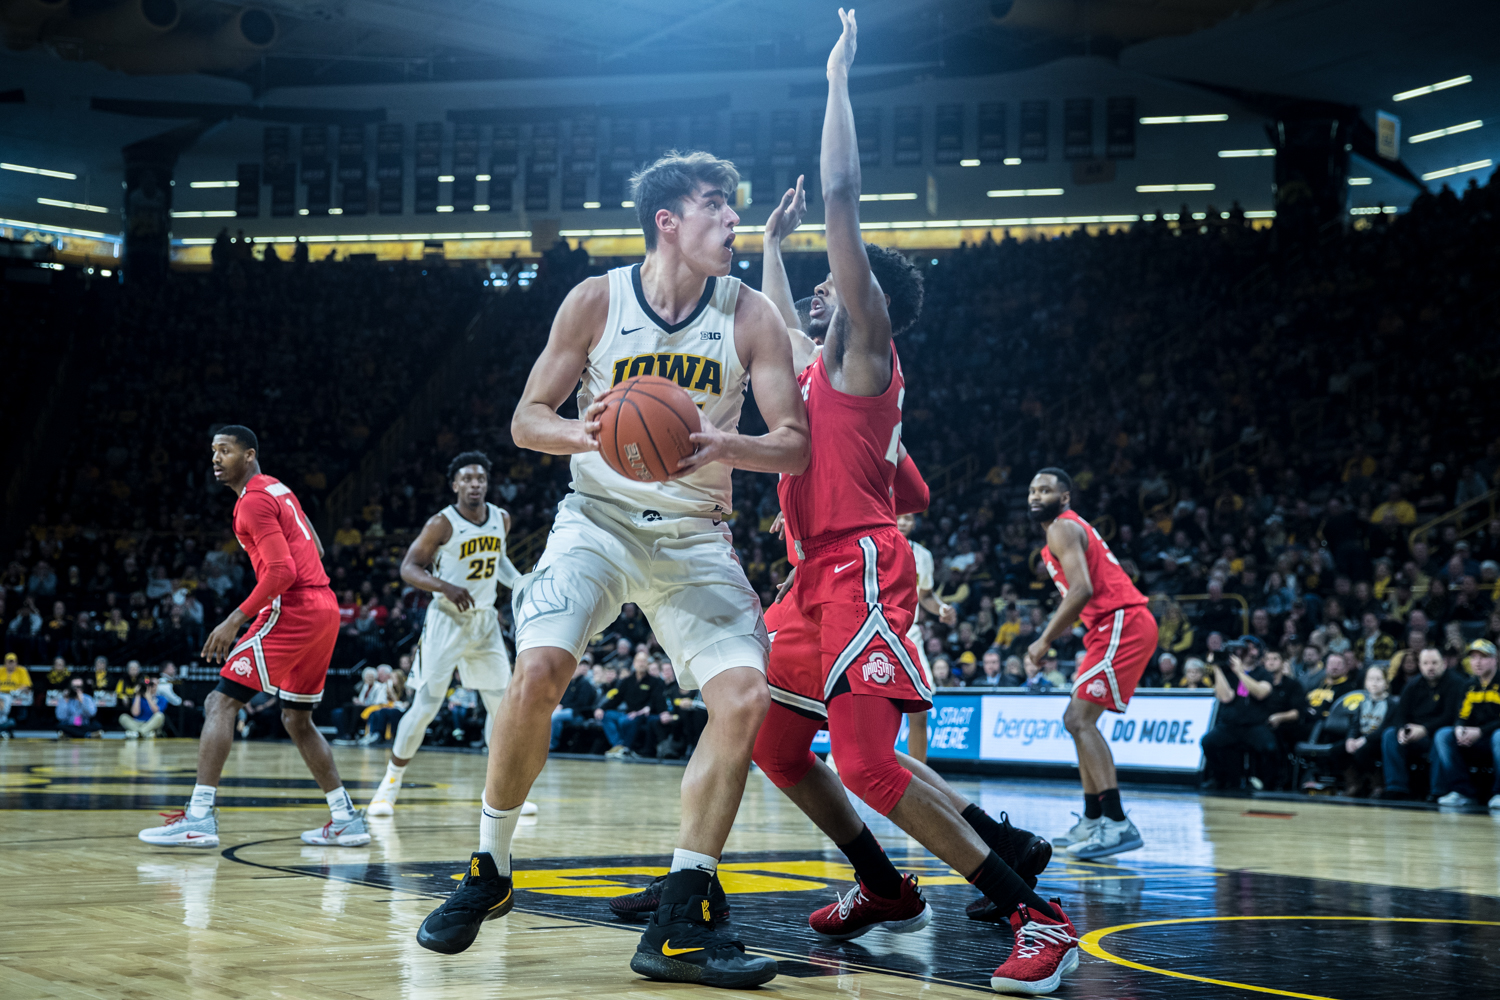 Iowa forward Luka Garza drives to the net during a men's basketball matchup between Ohio State and Iowa at Carver-Hawkeye Arena on Saturday, January 12, 2019. The Hawkeyes defeated the Buckeyes, 72-62.